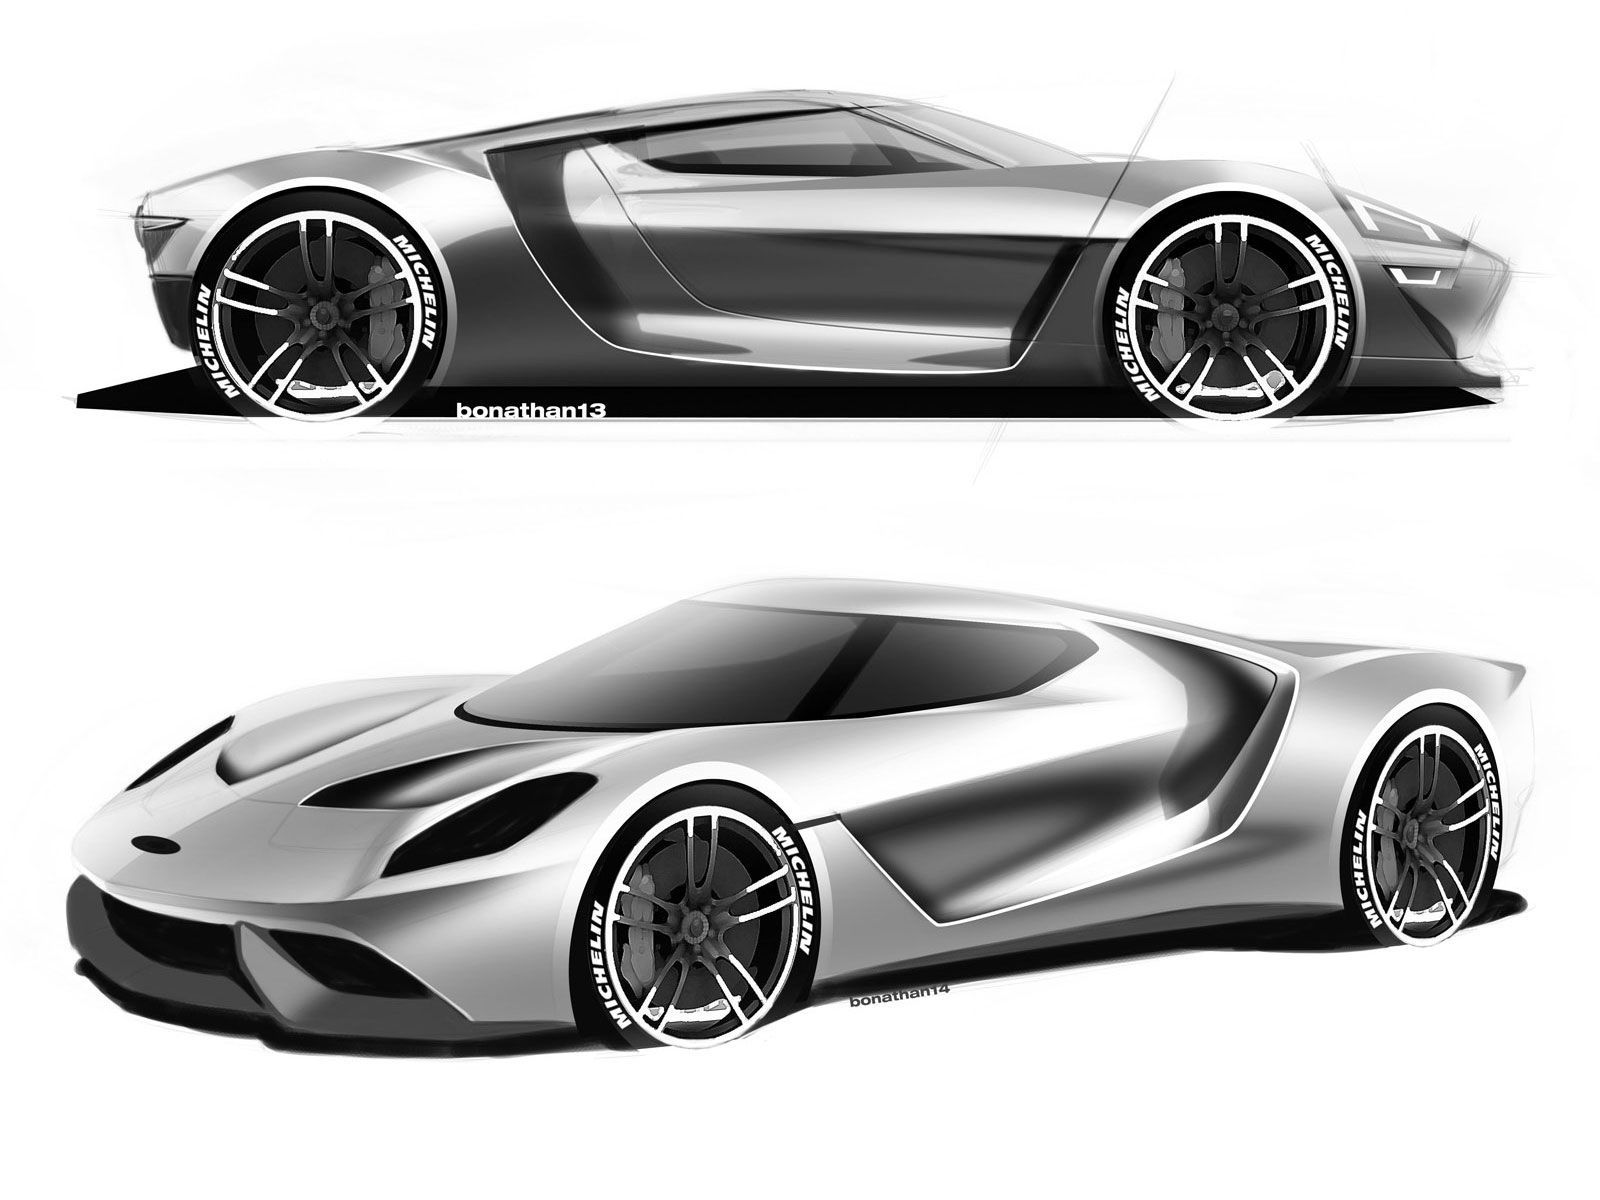 Ford GT production extended - Design Sketches #cardesign #carbodydesign #ford @fordgt #designsketch #design #supercar Ford GT Ford-GT BMW Volkswagen Toyota Nissan Alfa romeo Car interiors Bmw series Volvo Audi tt Peugeot Chip foose Transportation design Technology Gadgets Computers Electronics Robots Drones Vehicles Startups Future tech Energy technology